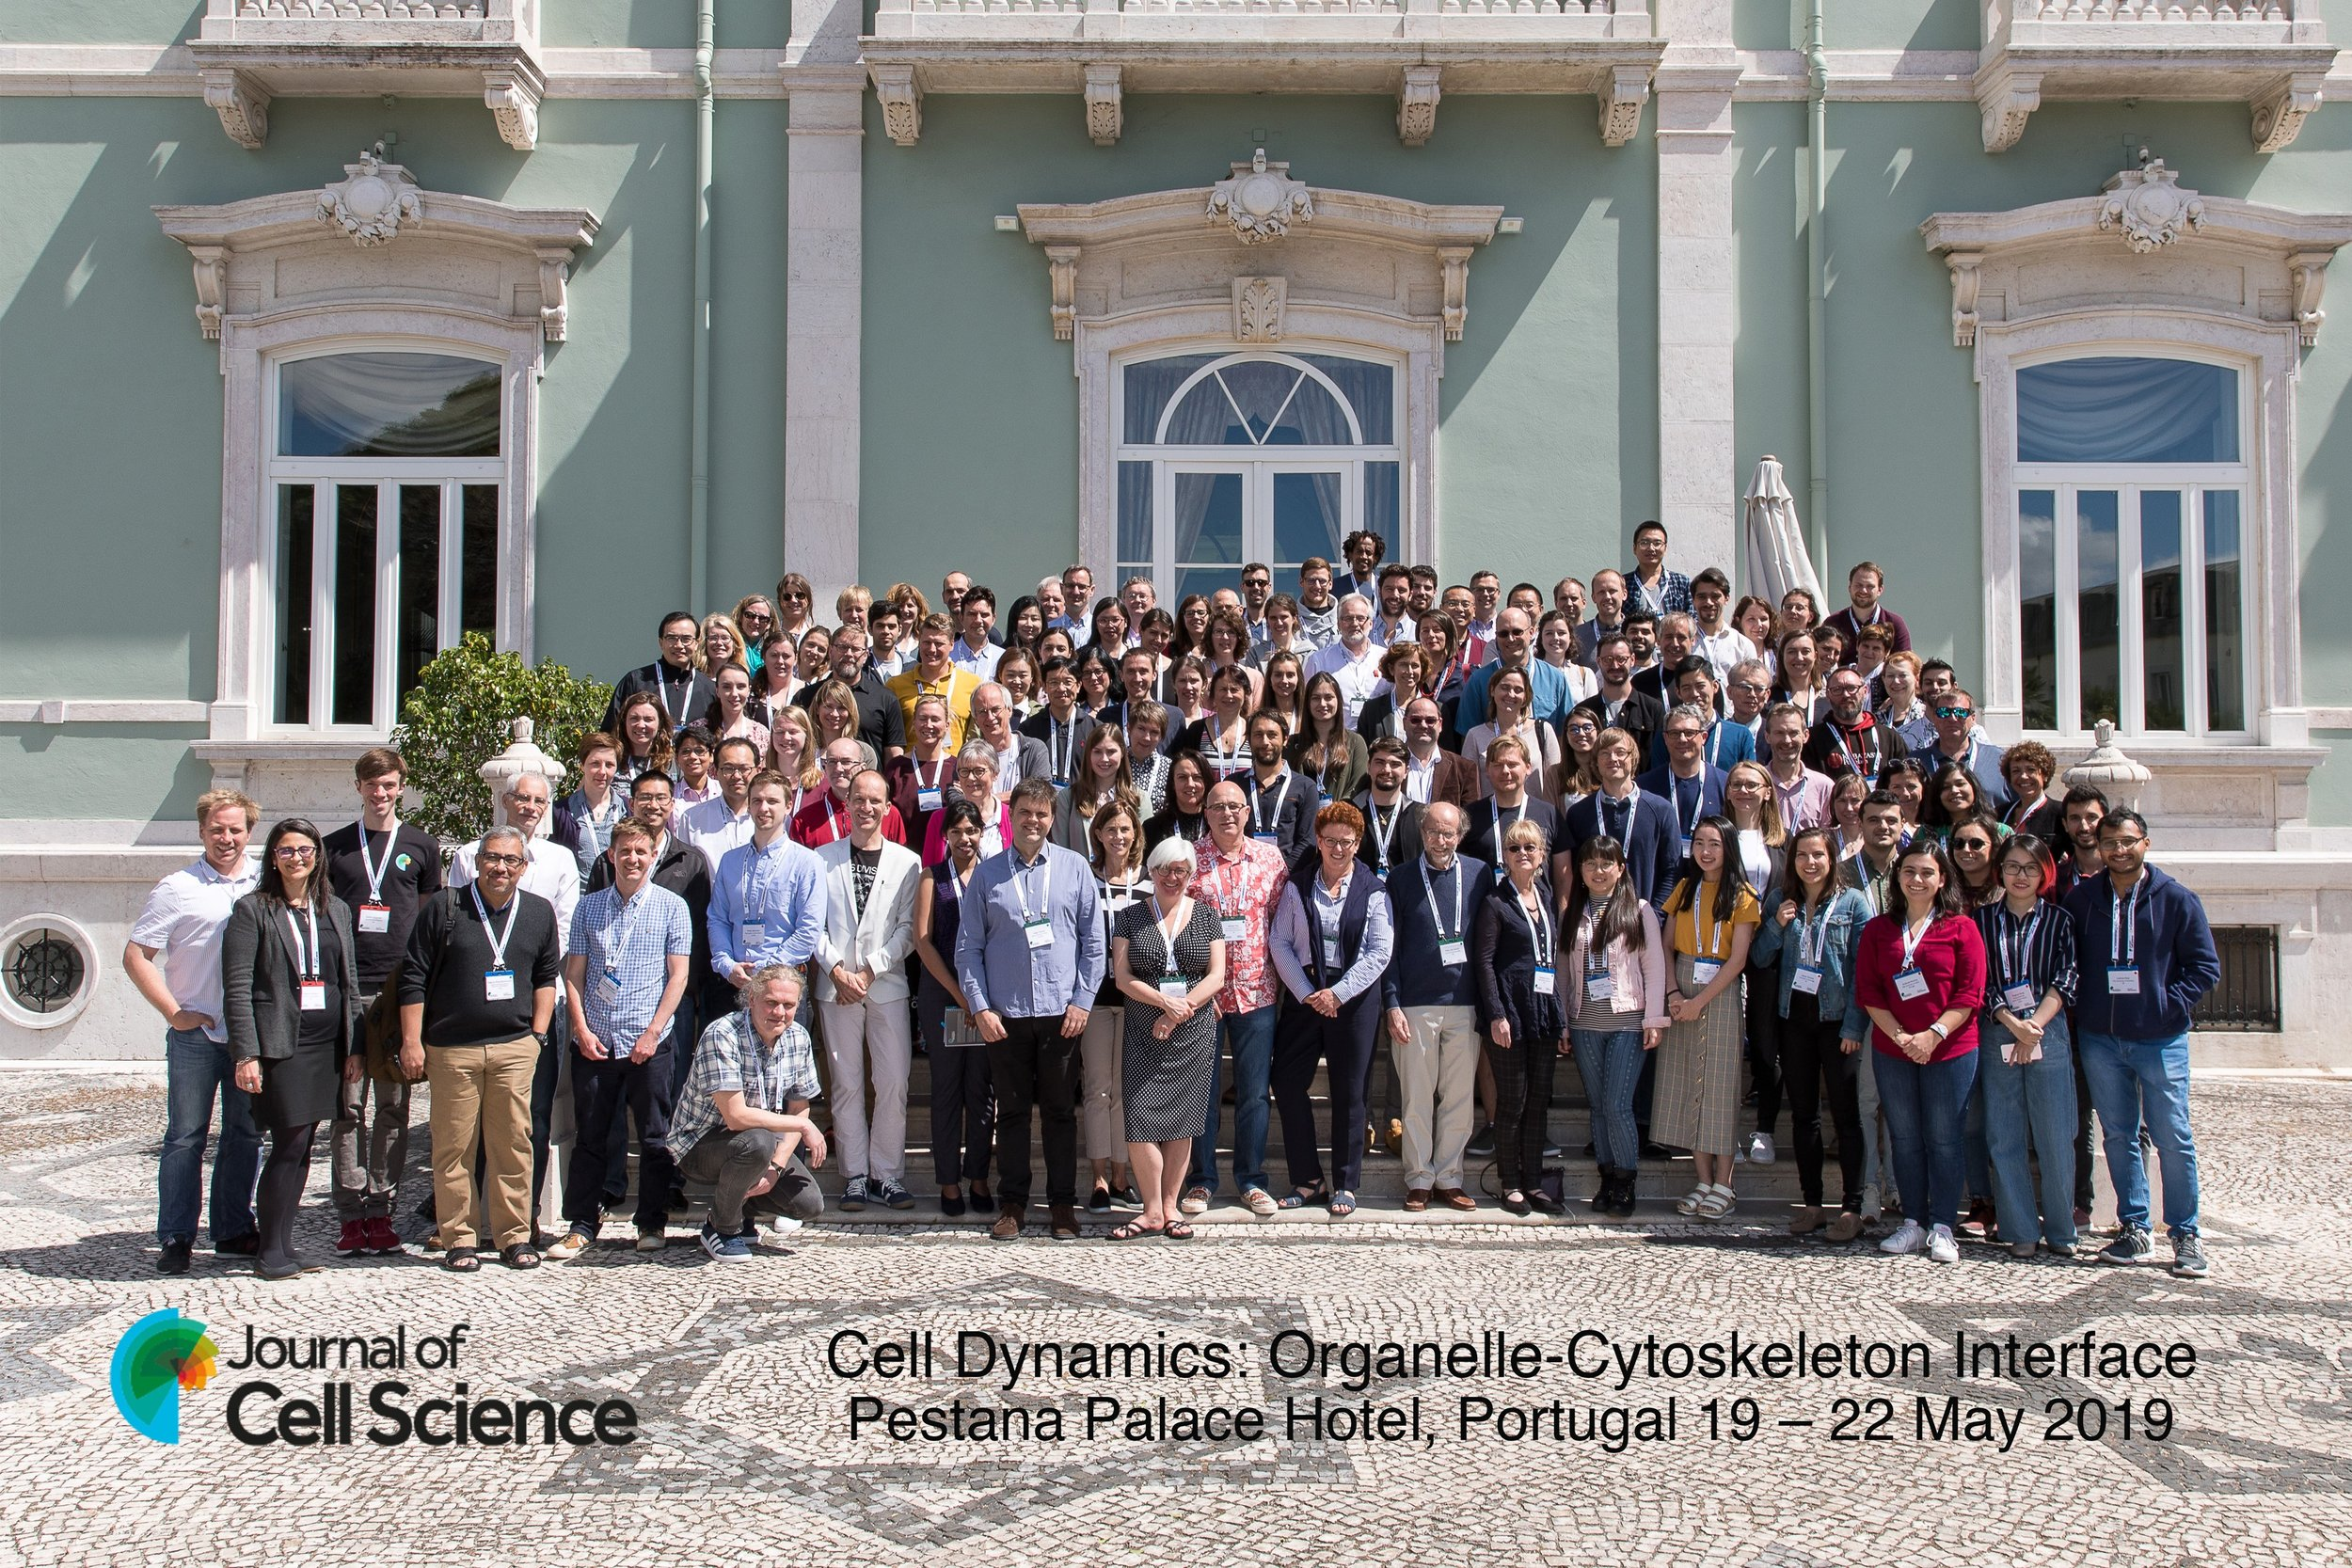 Photo: https://www.biologists.com/meetings/celldynamics2019/